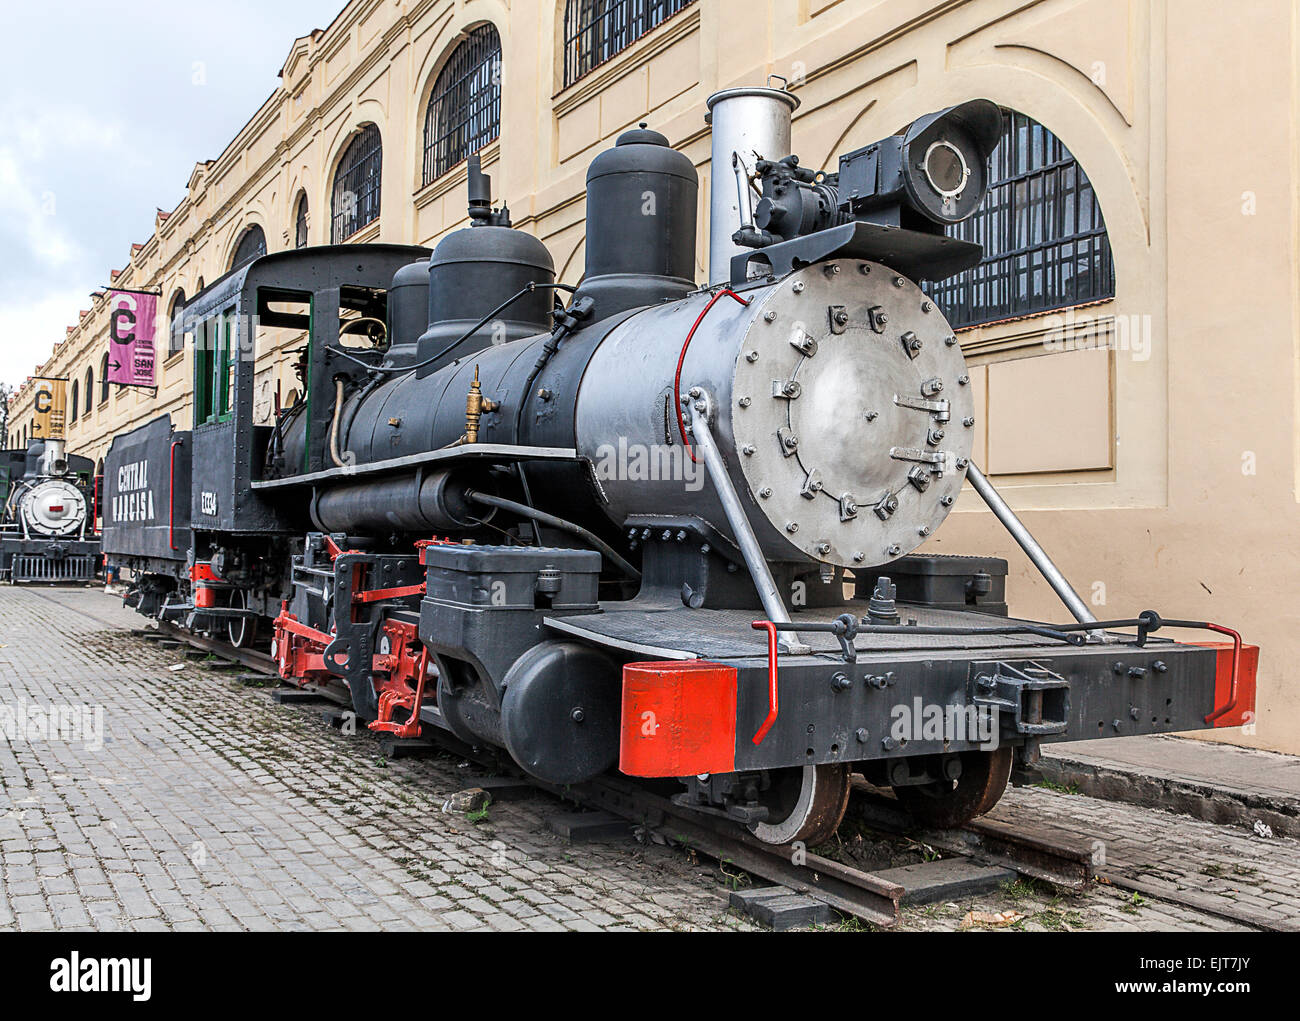 Old American steam trains on display at the harbour in Old ...